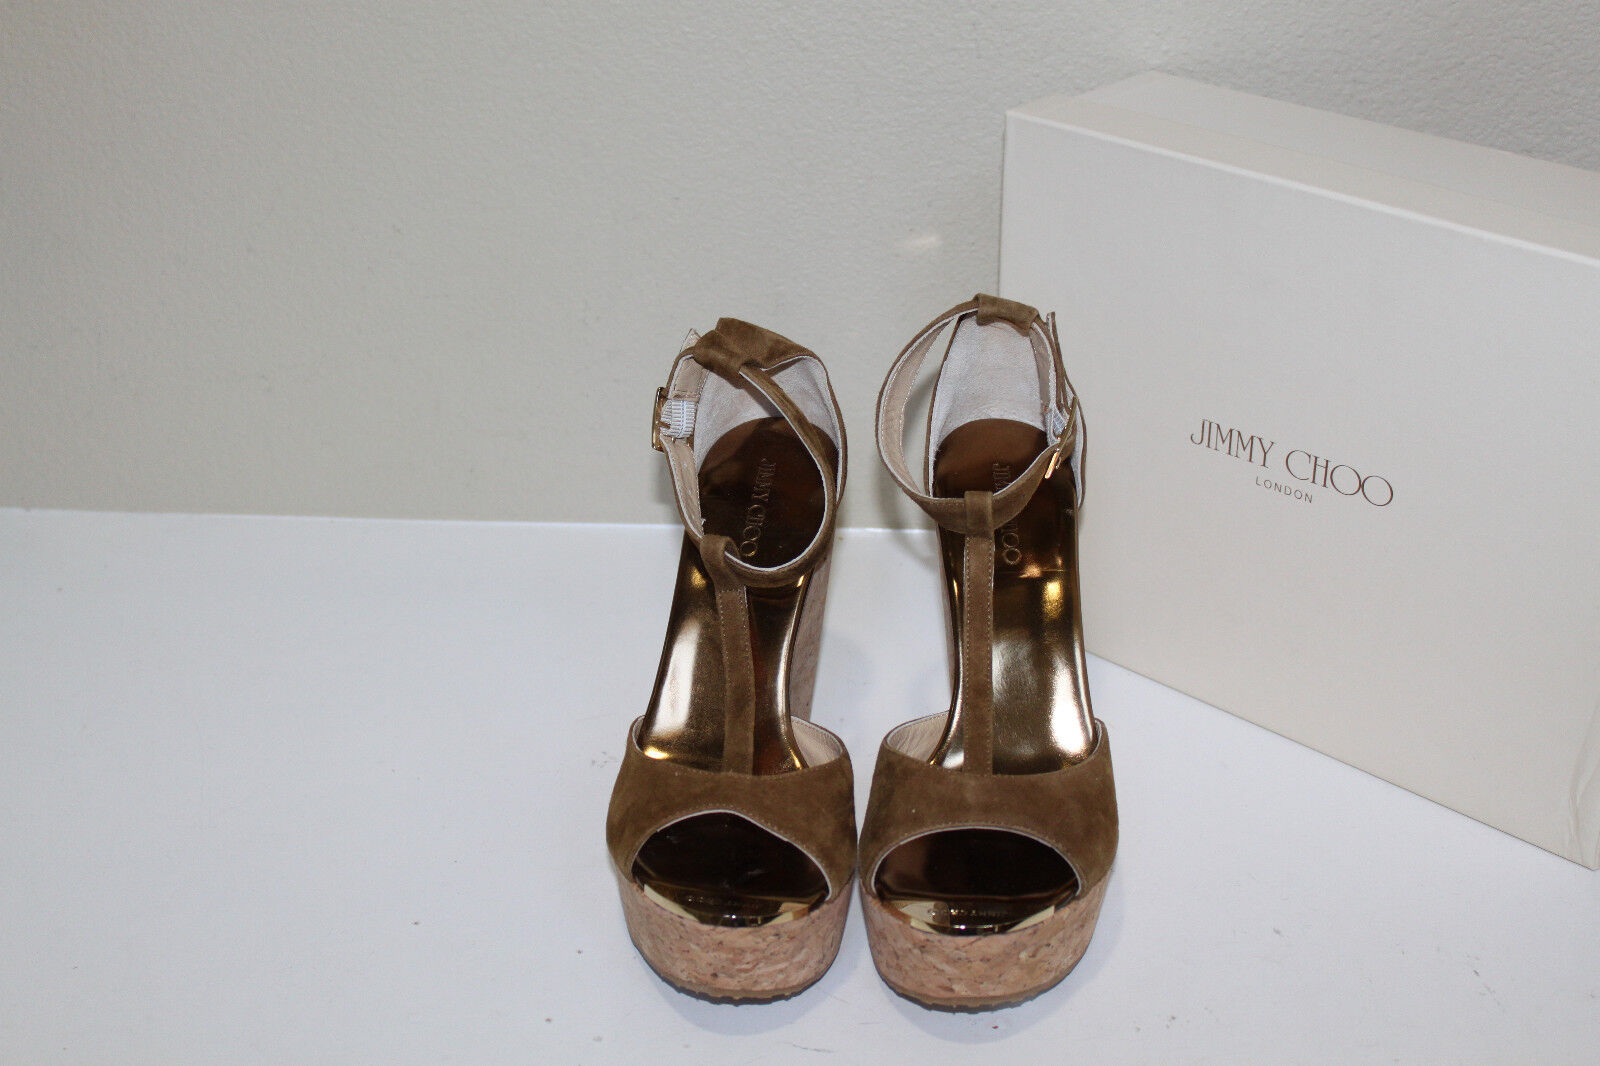 Sz 10 / 40 Jimmy Choo Pela Brown Suede Cork Espadrille Wedge Sandal Shoe